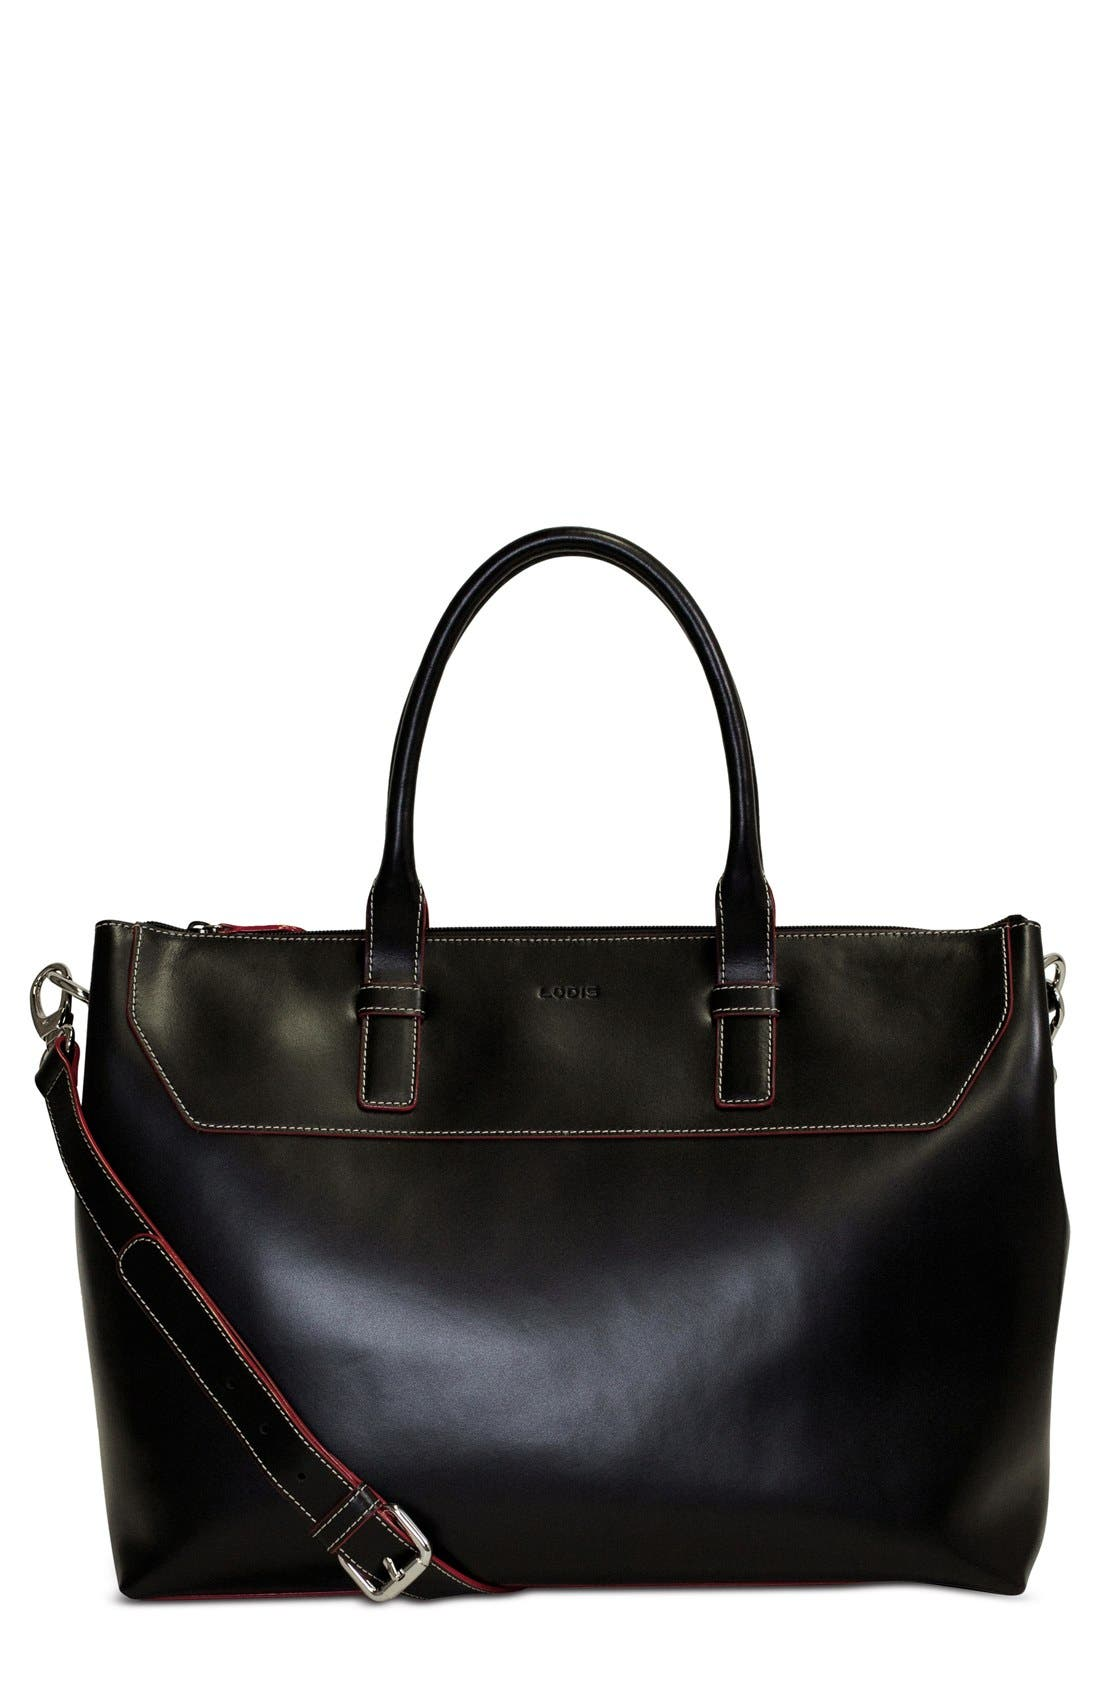 LODIS Audrey Wilhelmina Leather Work Satchel